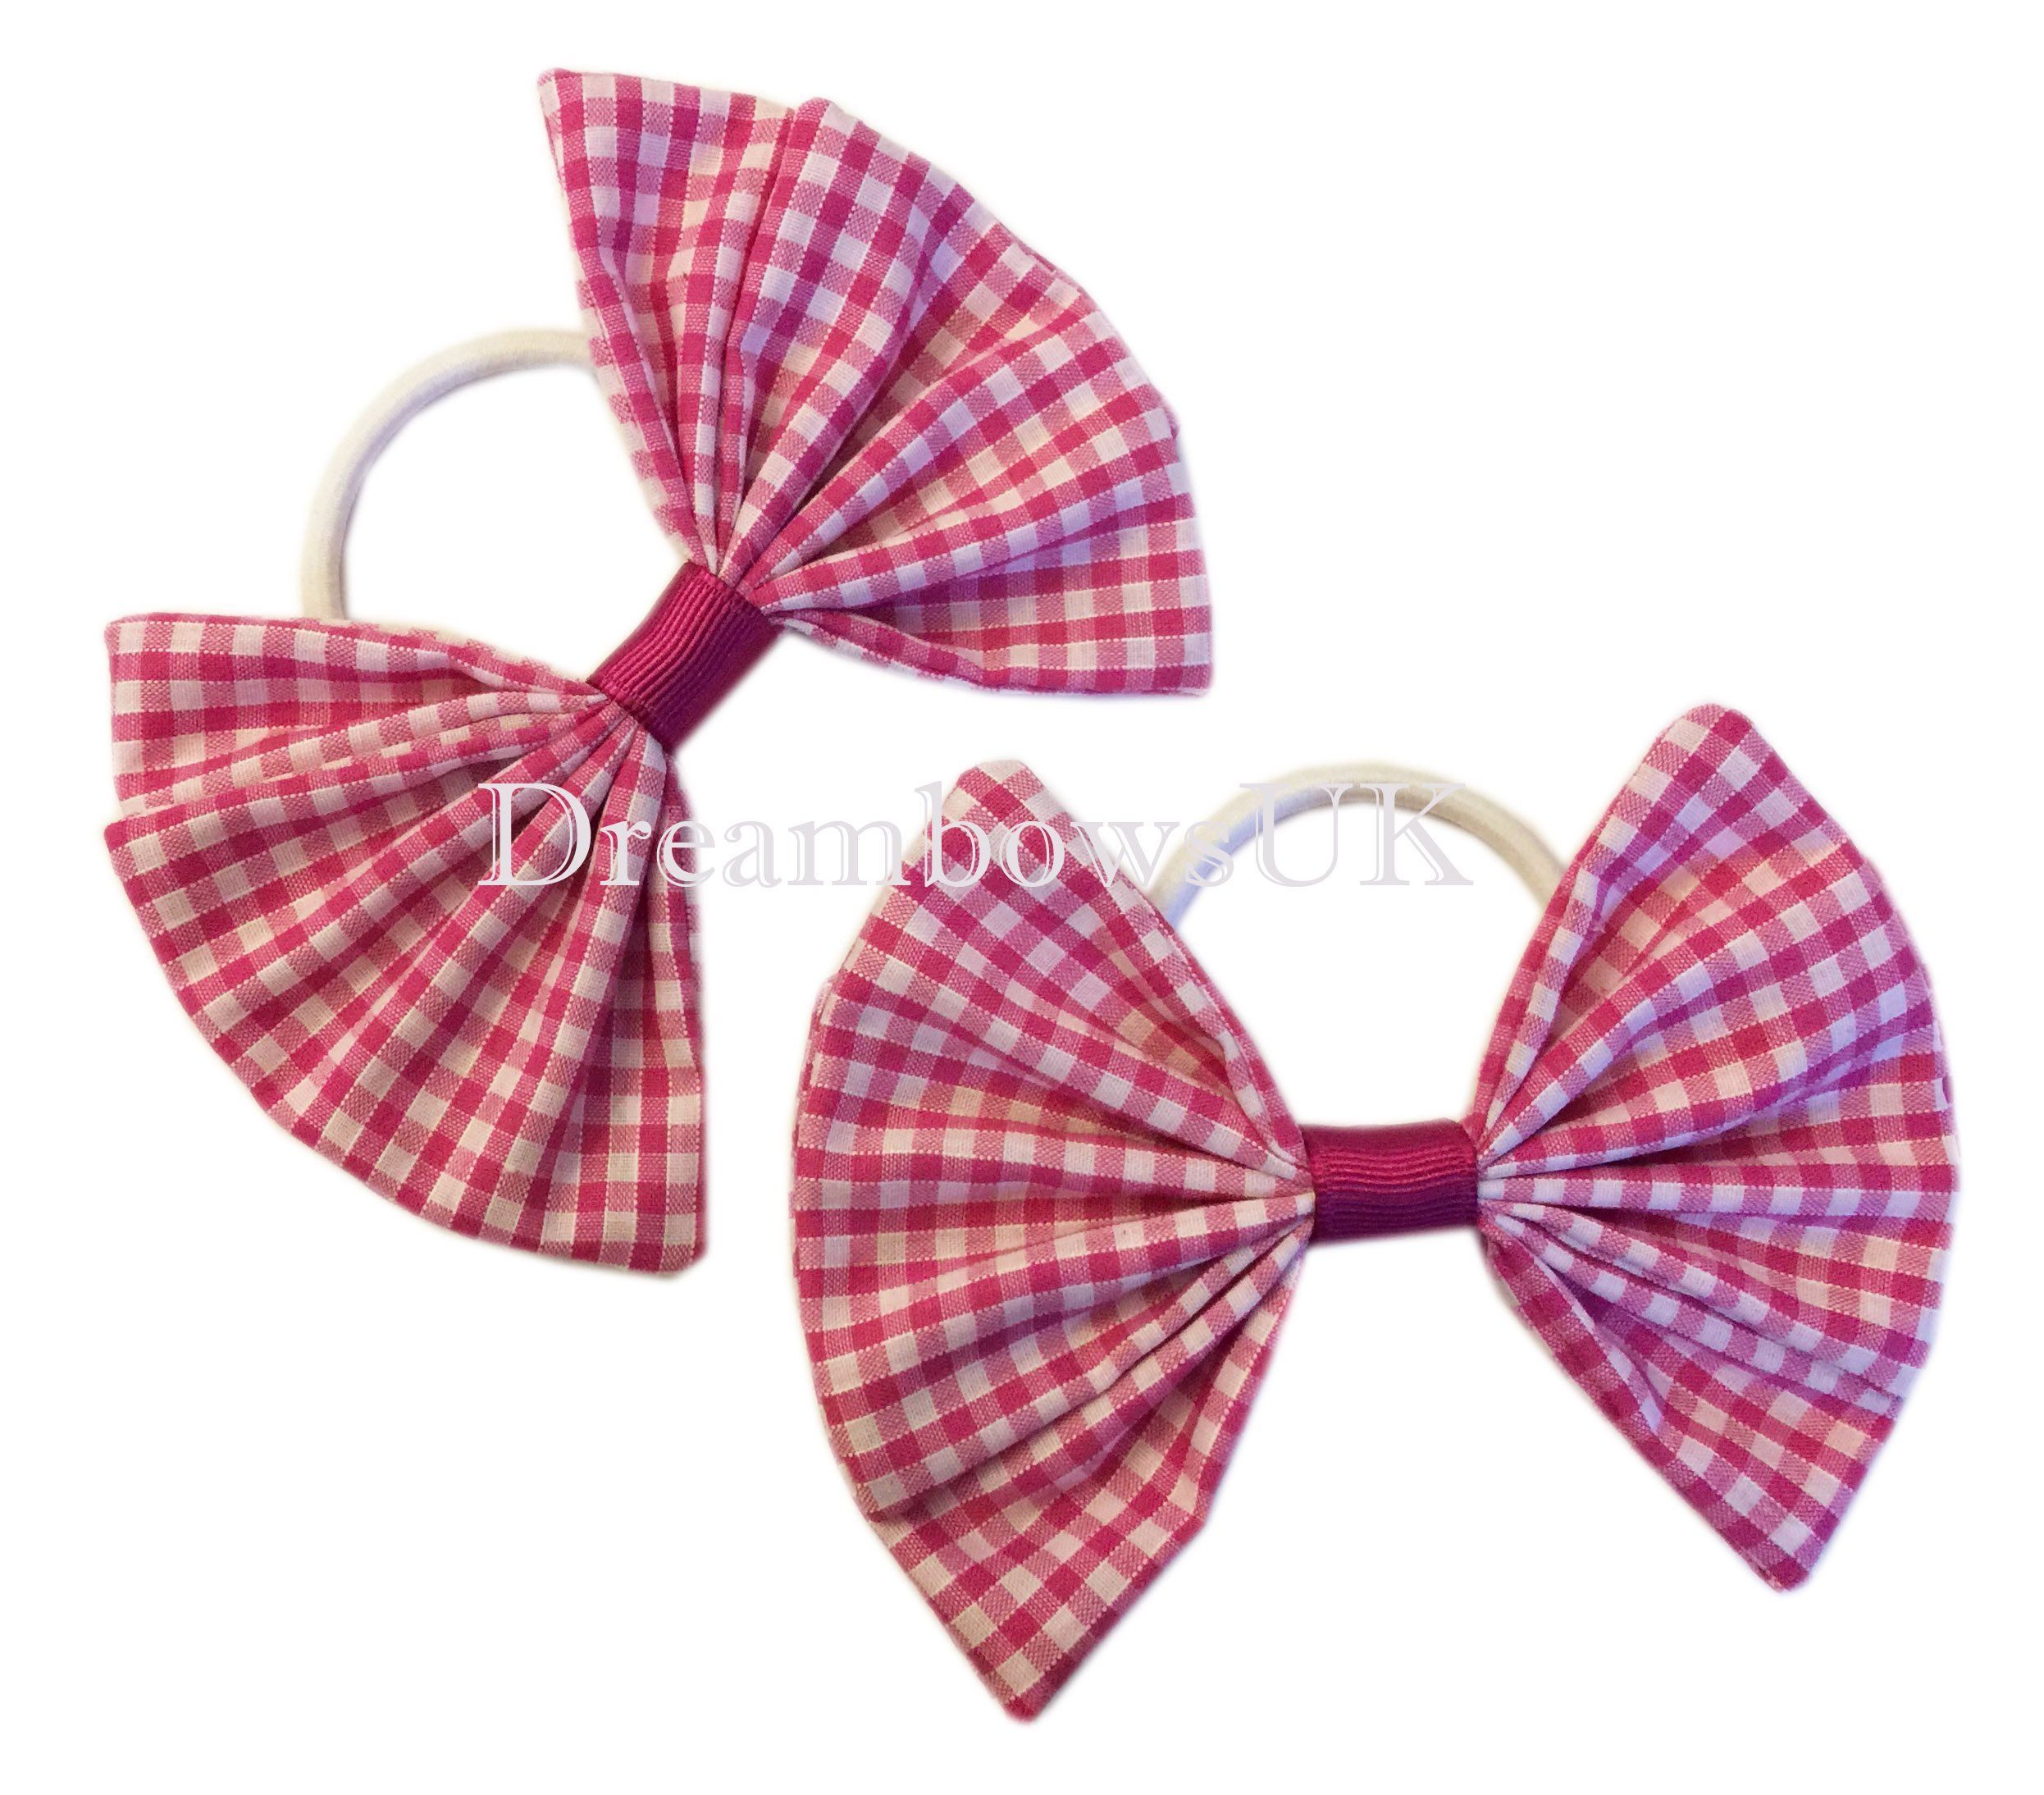 Red and white gingham bows on alligator clips or bobbles gingham accessories